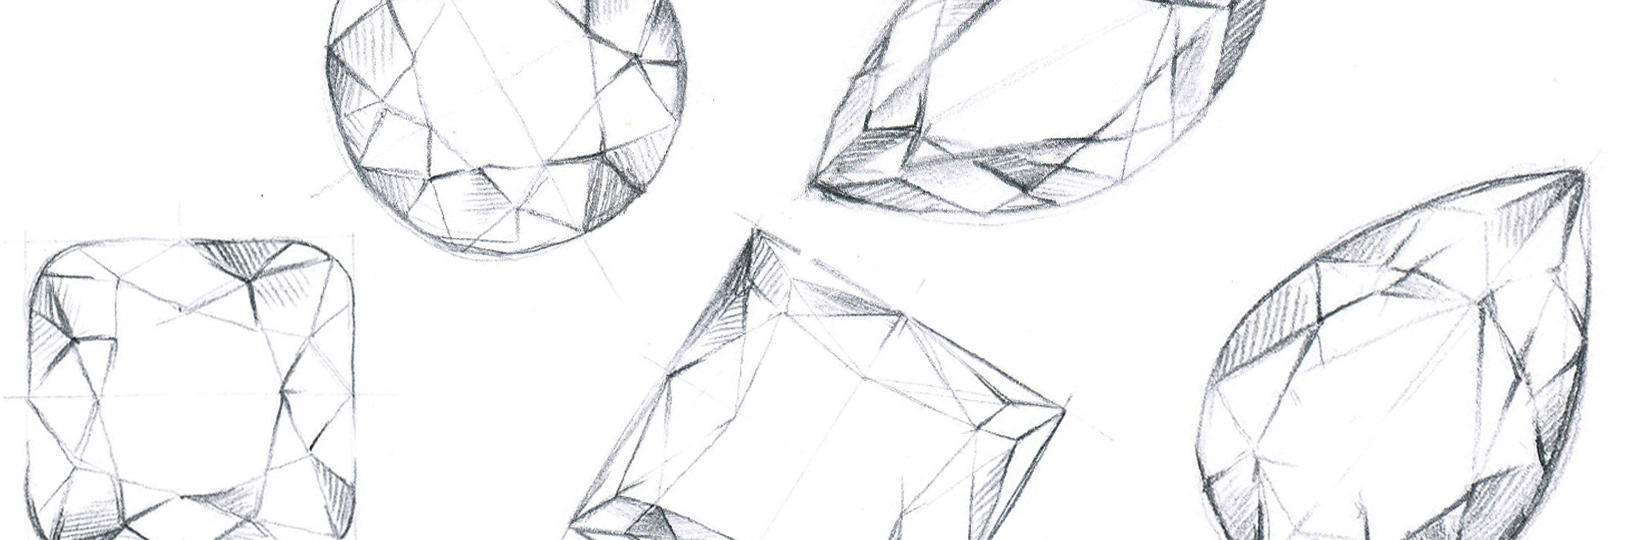 A sketch of different diamond shapes